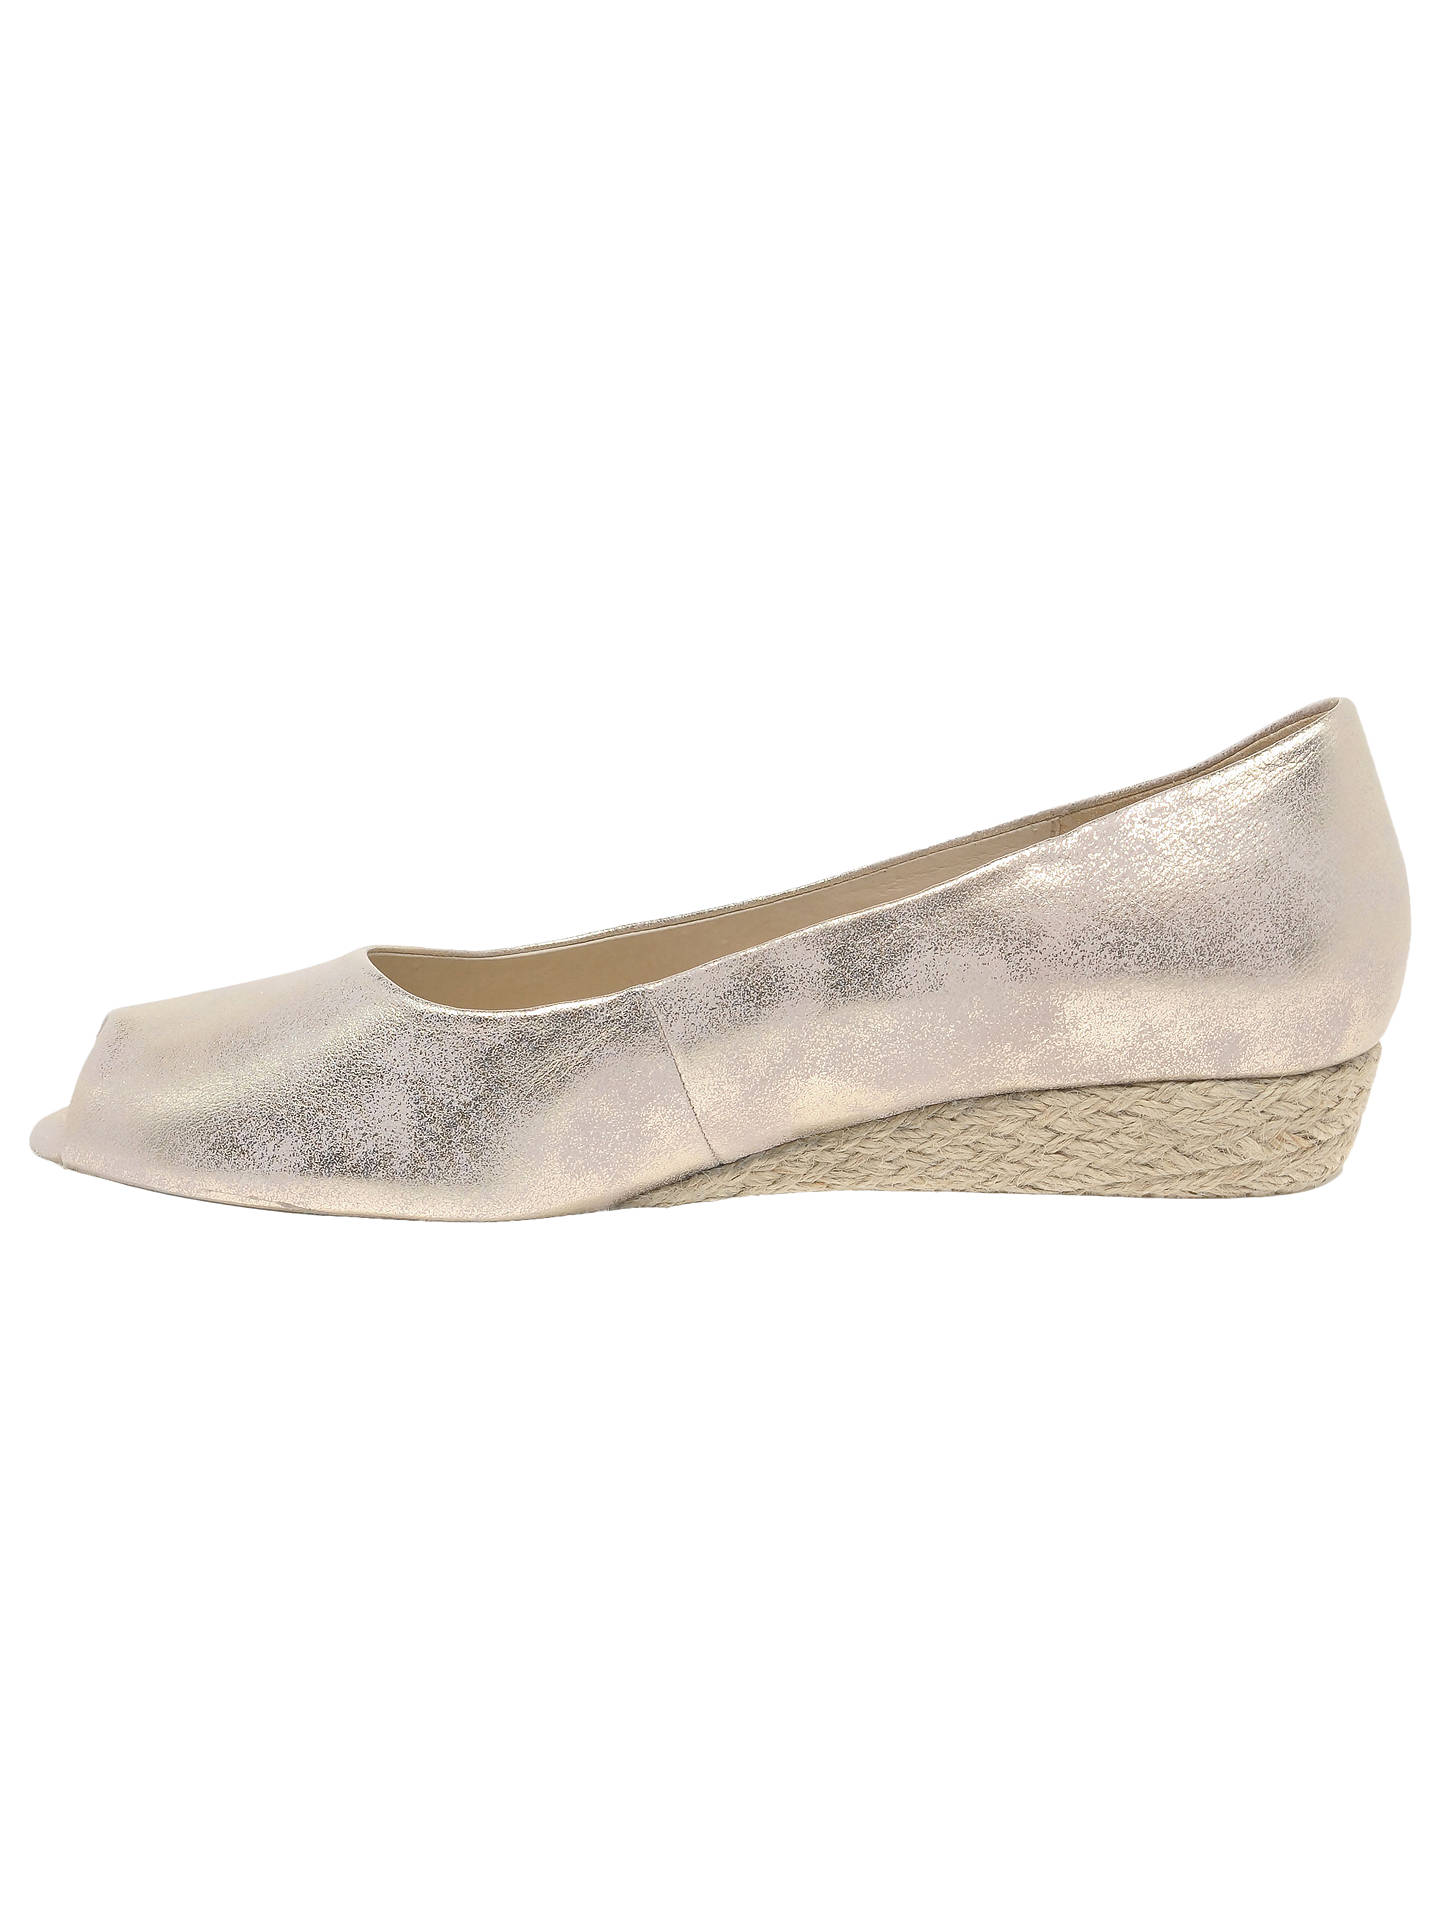 BuyGabor Roseford Wide Fit Wedge Heel Espadrille Sandals, Metallic, 4 Online at johnlewis.com